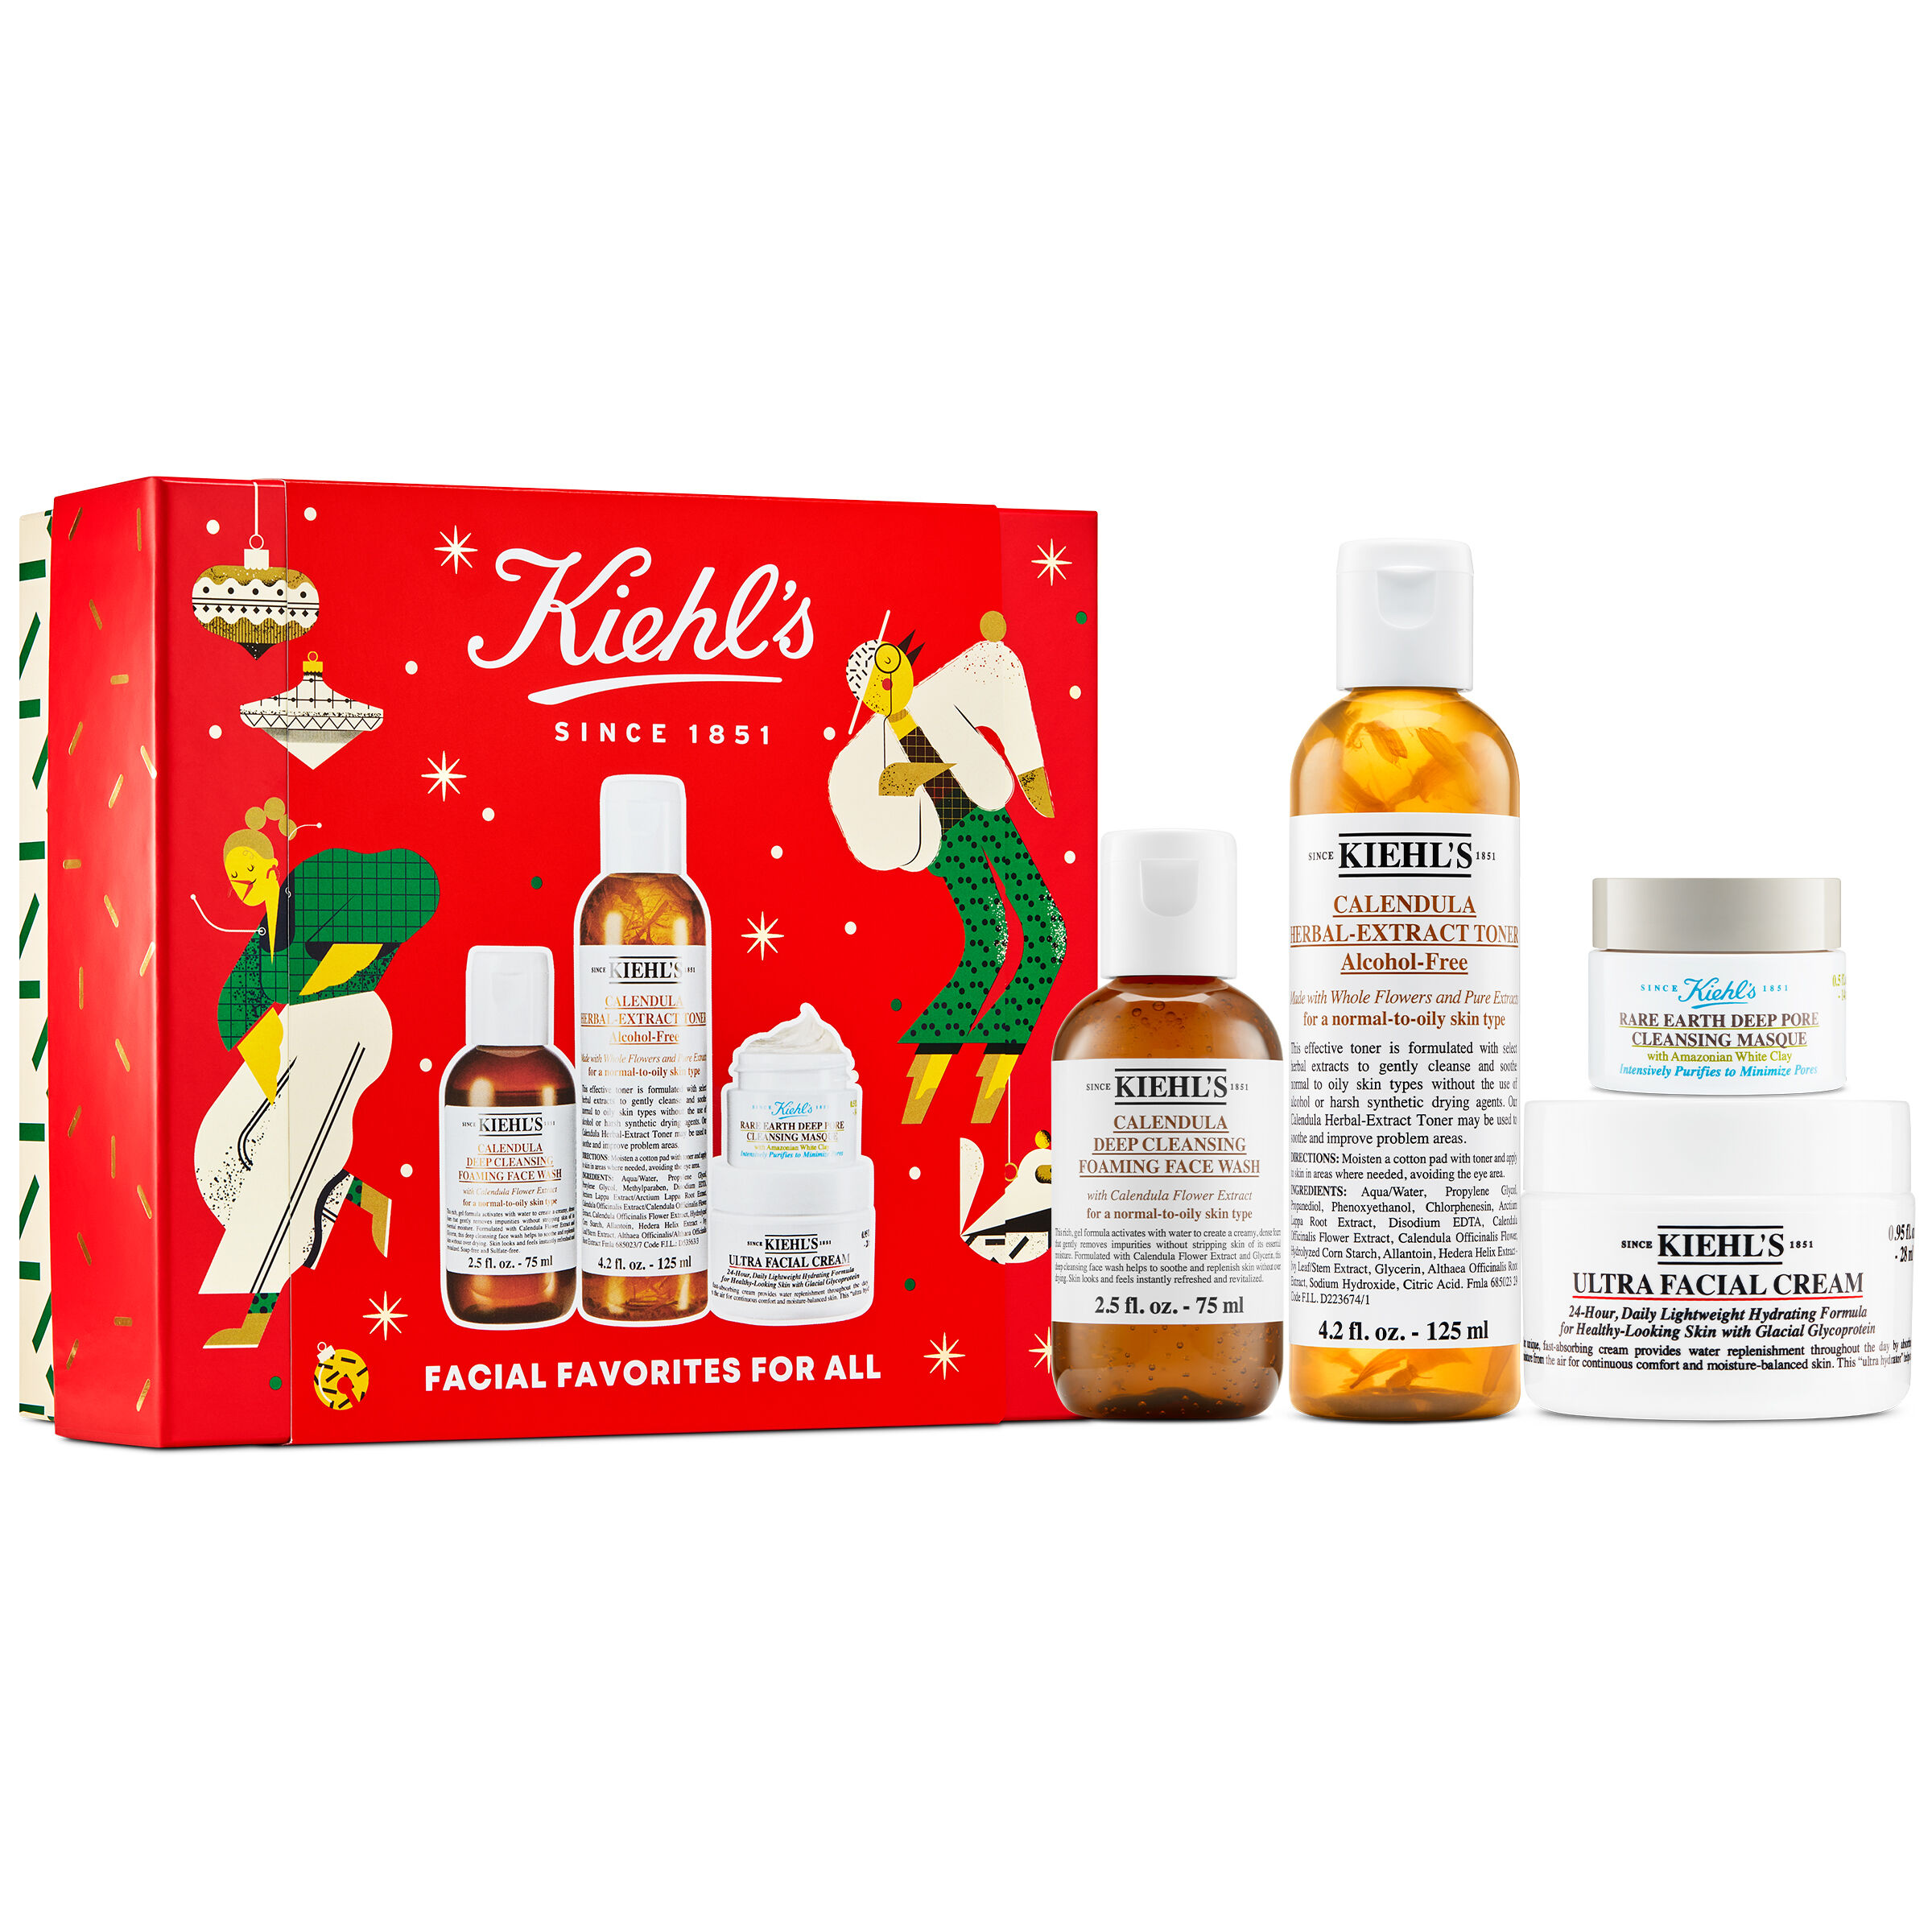 Kiehl's Facial Favourites For All Skincare Gift Set